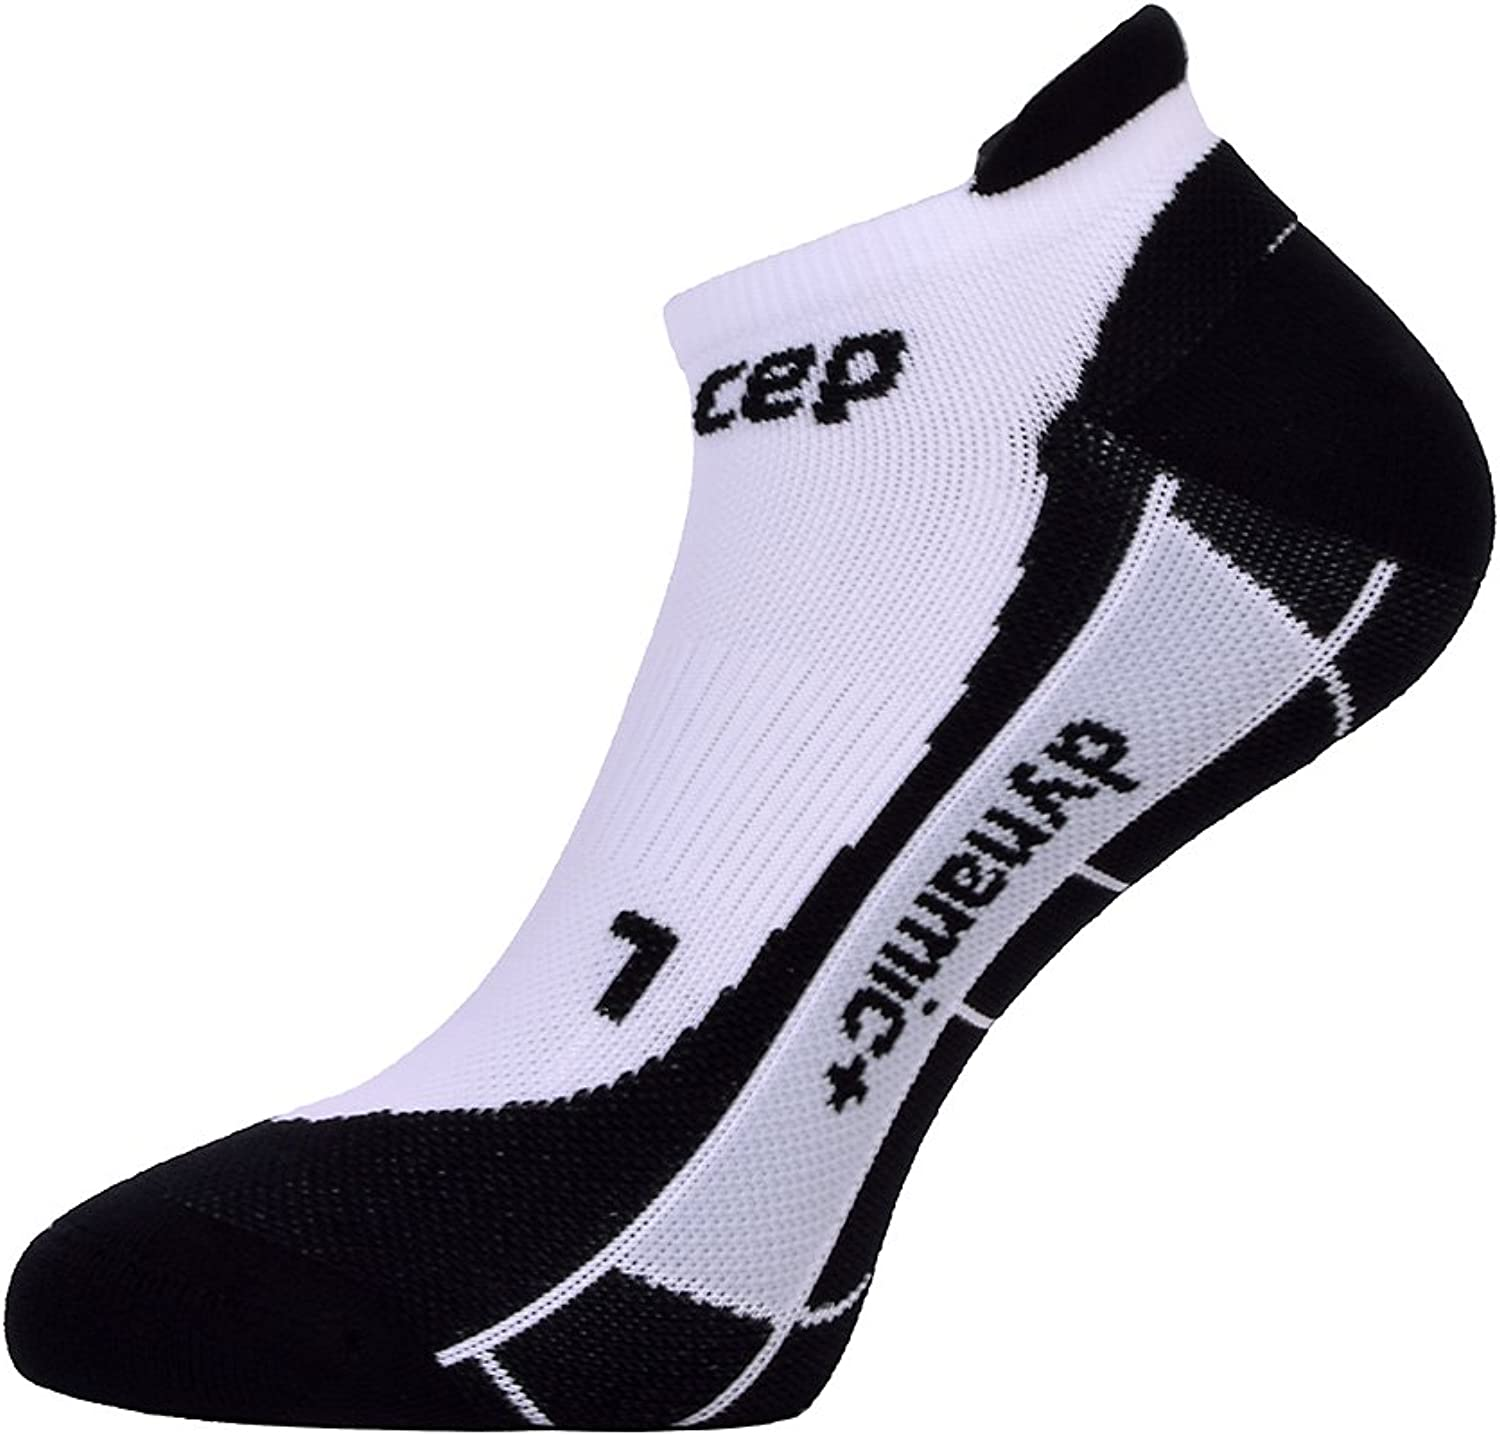 CEP Women's No Show Running Socks  Compression Socks for Performance